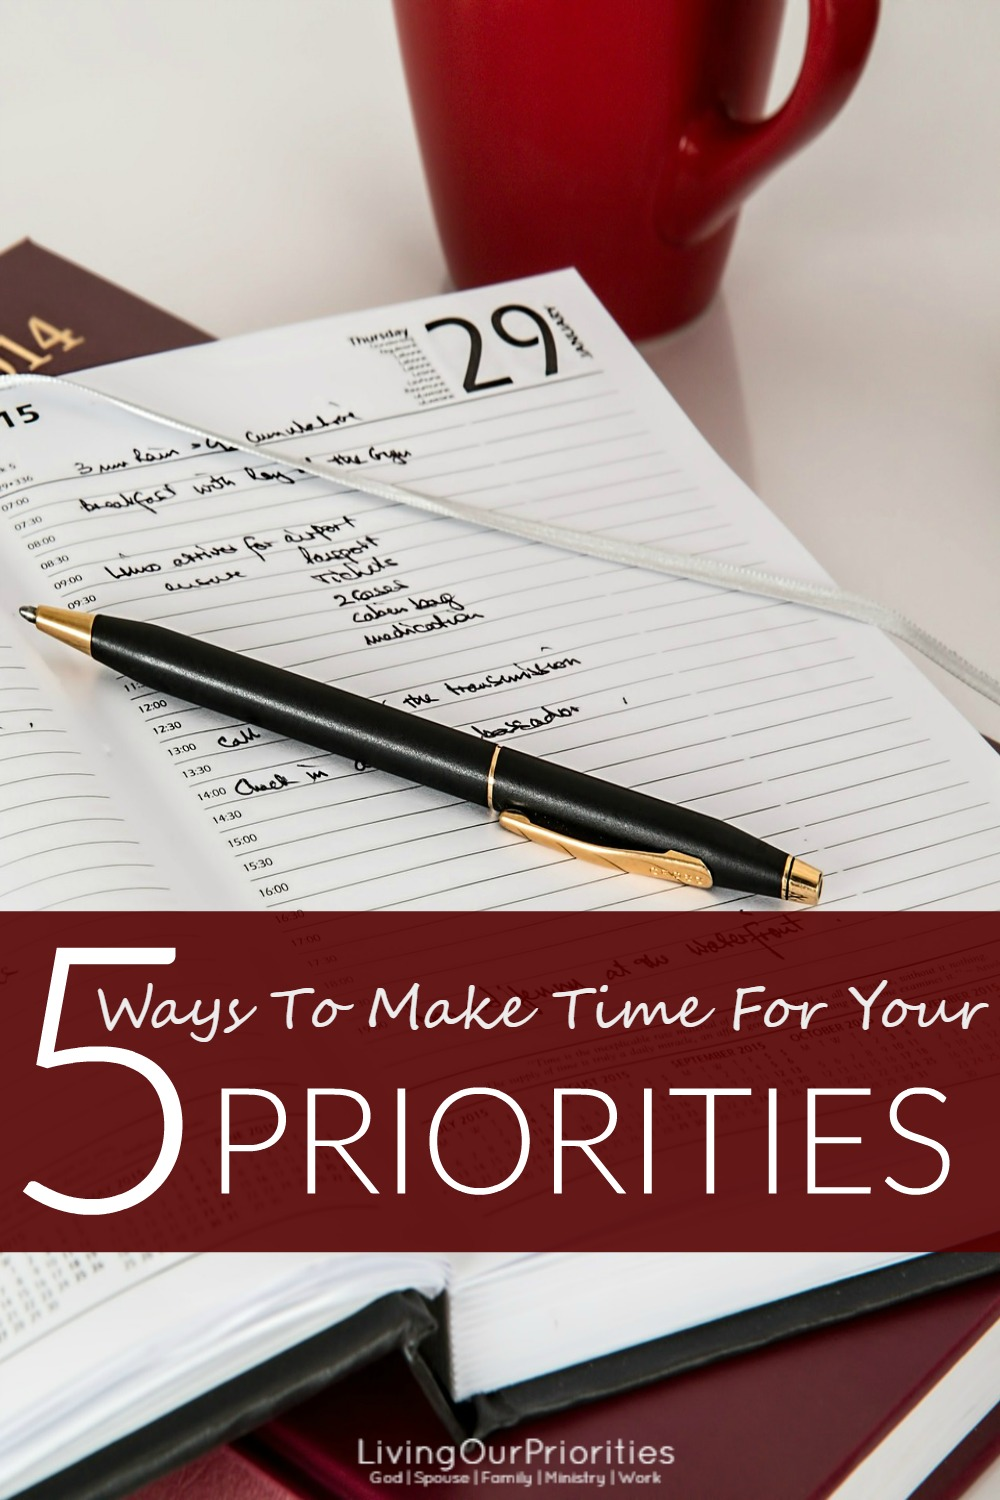 We are often asked how do we find the time to do all that God has called us to do without neglecting our priorities. The answer is in this blog!